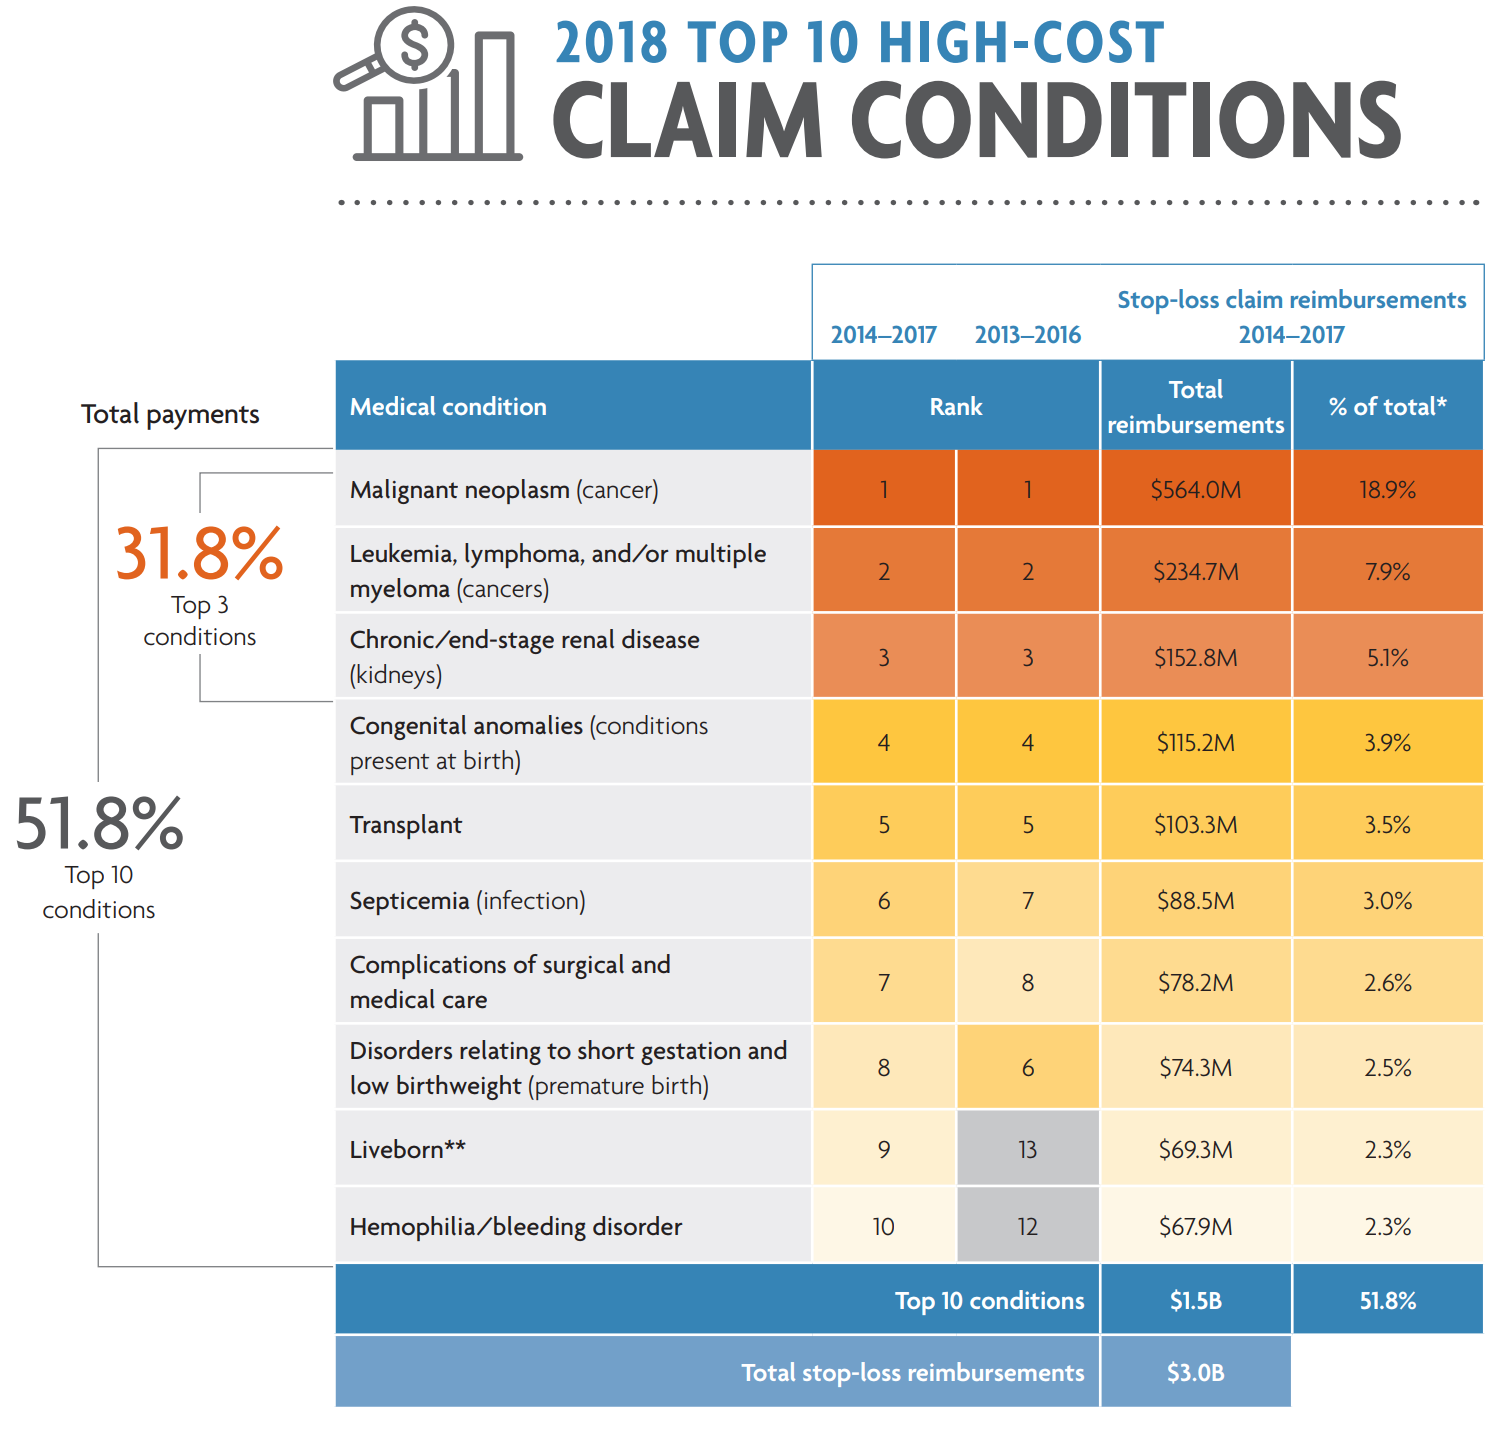 2018 Top 10 High Cost Claims